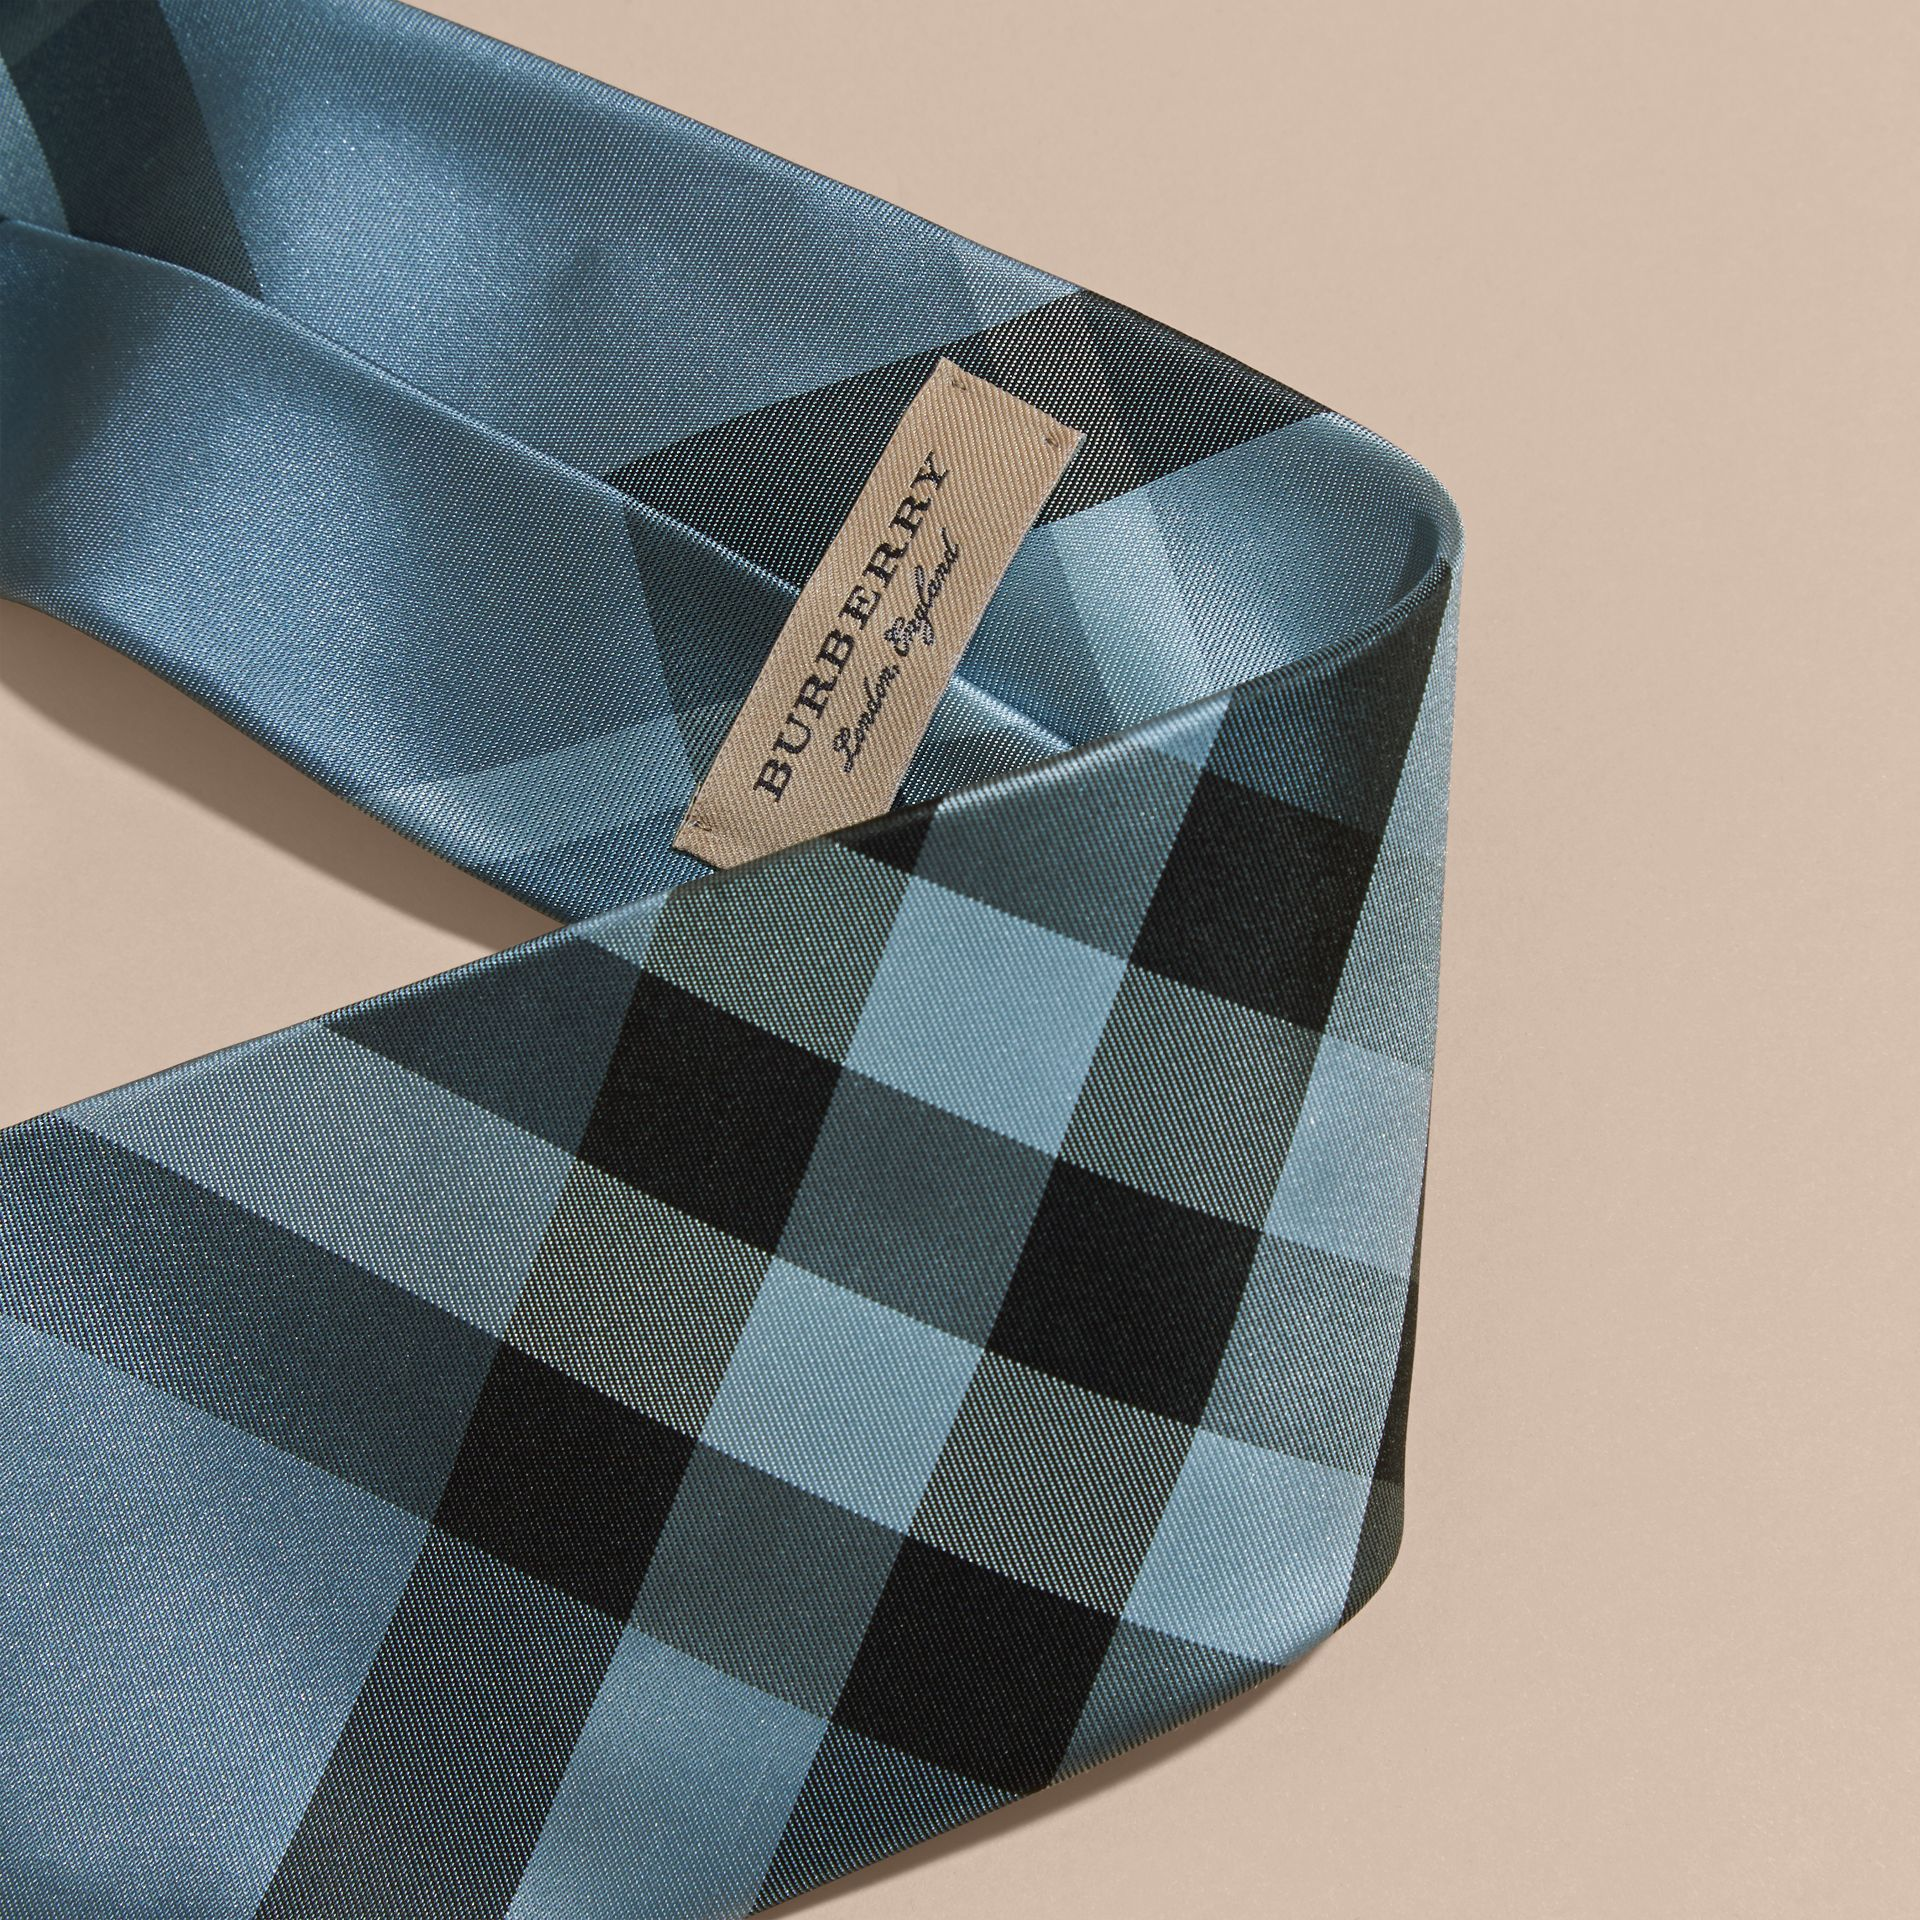 Classic Cut Check Silk Tie in Light Blue - Men | Burberry - gallery image 2